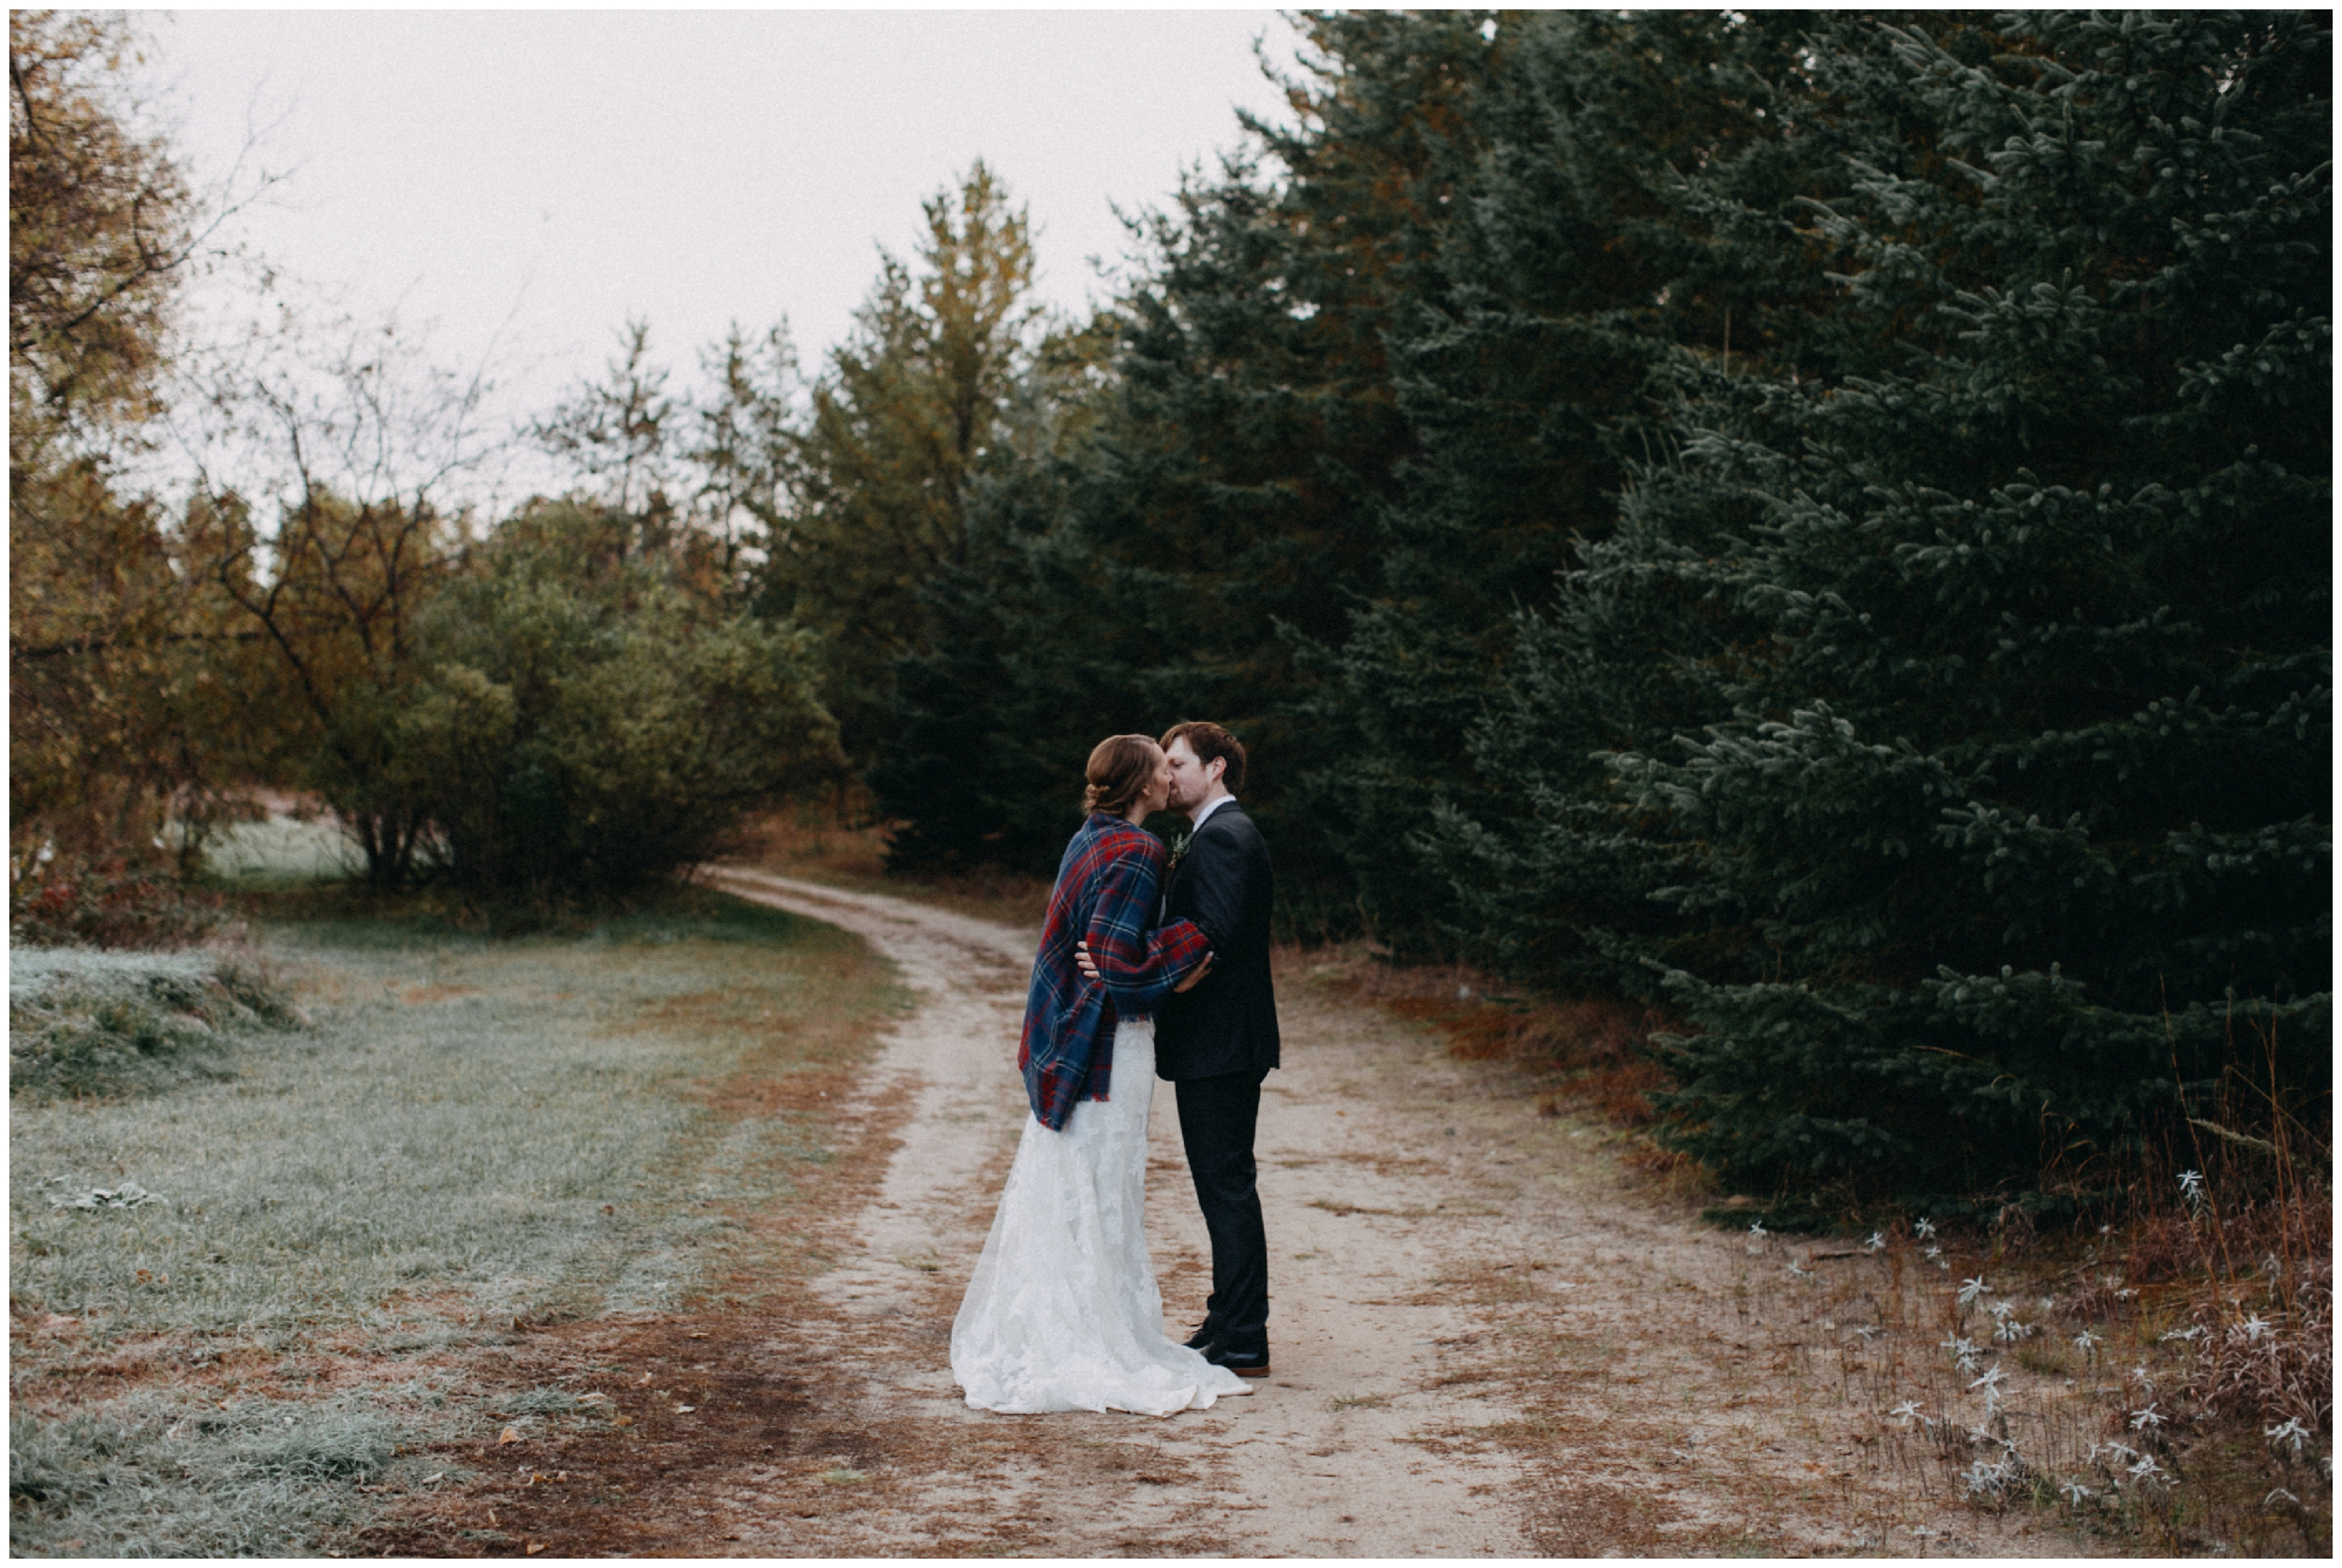 Romantic October wedding at the Northland Arboretum in Brainerd MN